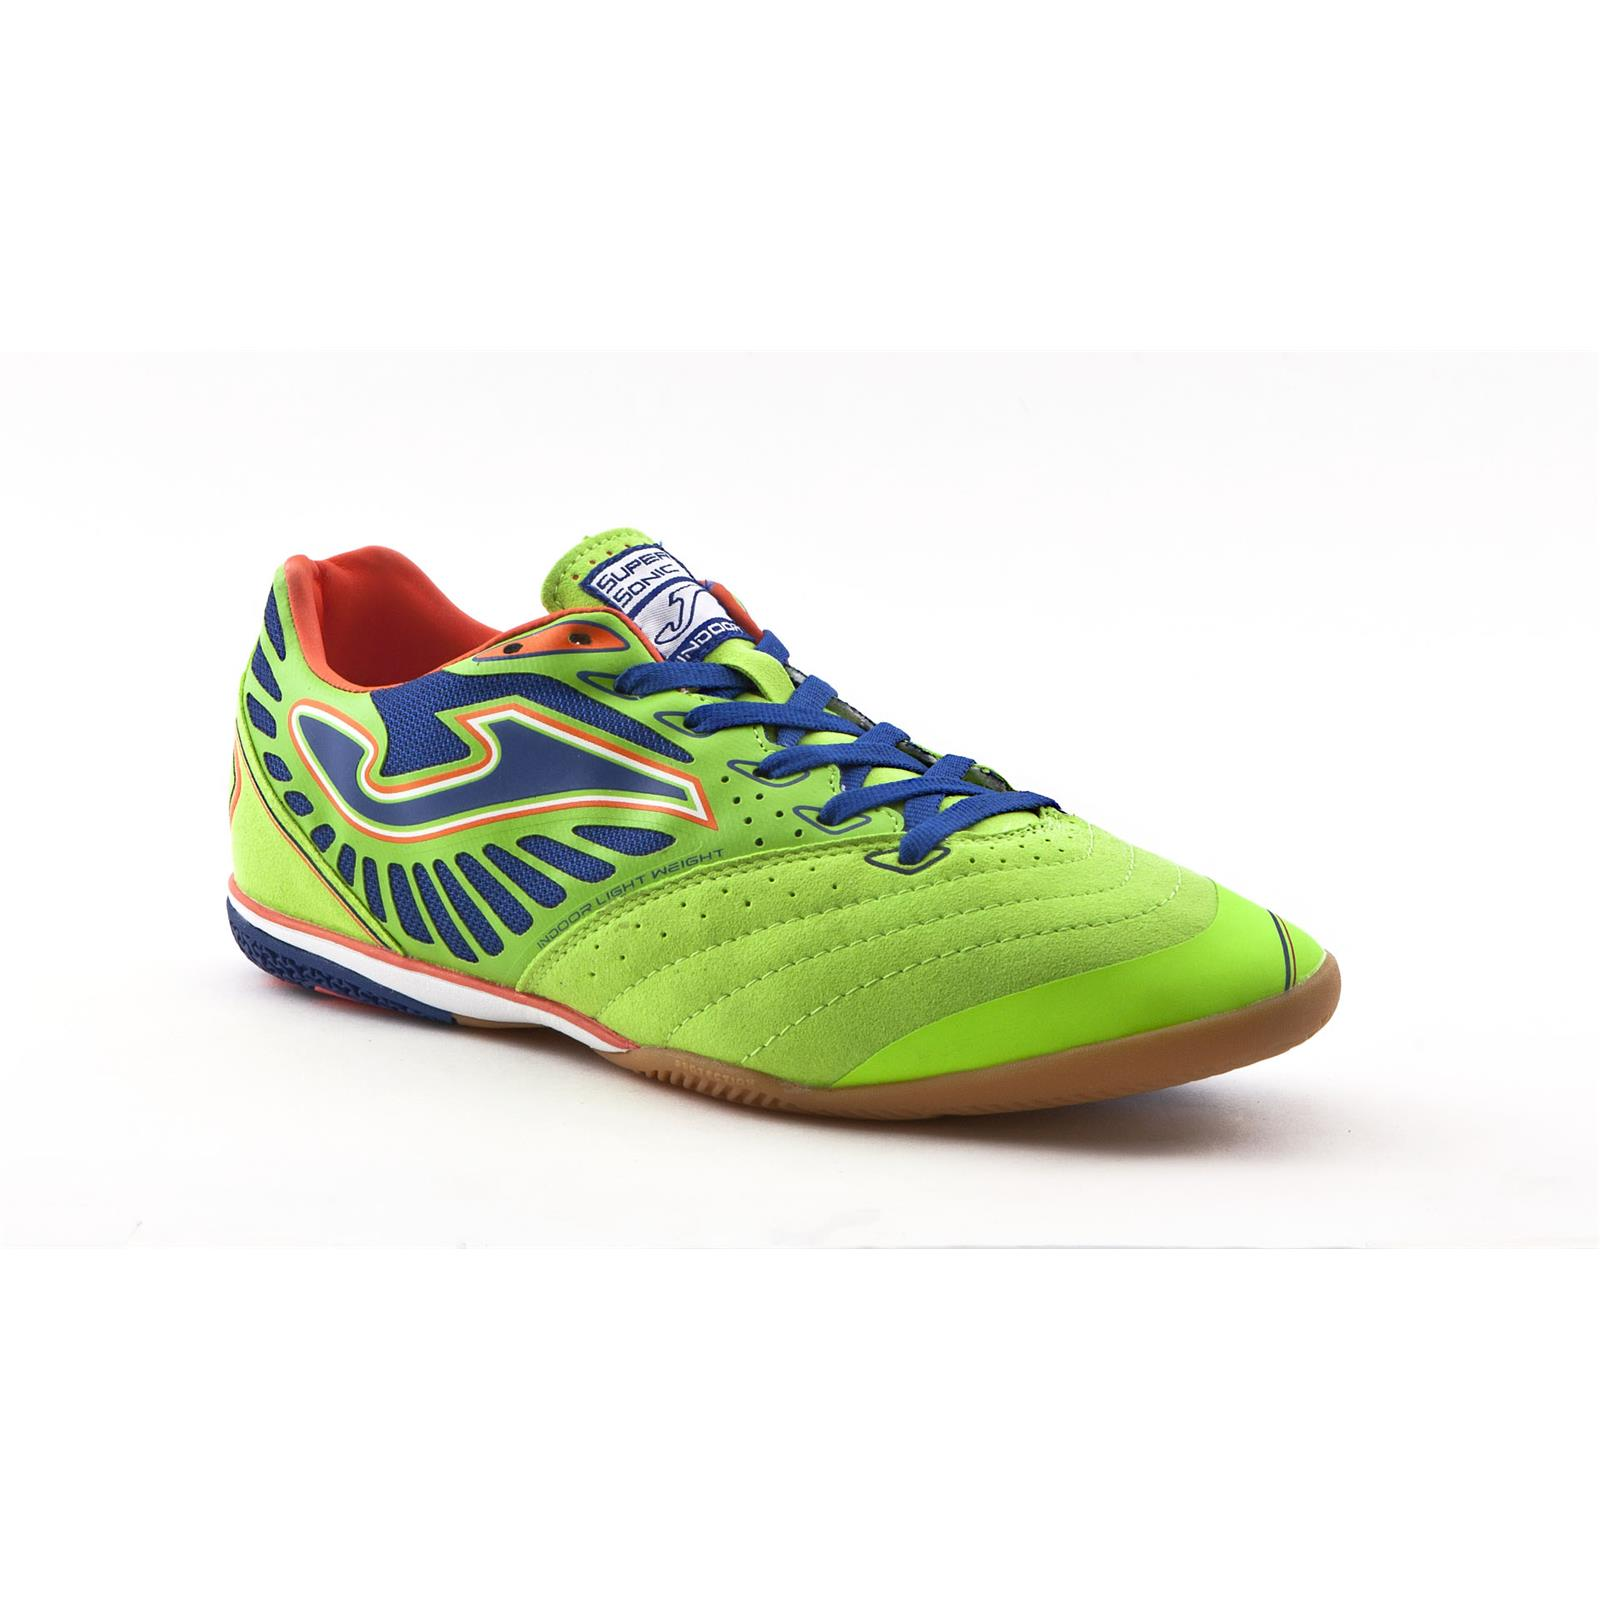 JOMA Scarpa calcetto sala Supersonic 411 (43 - VERDE)